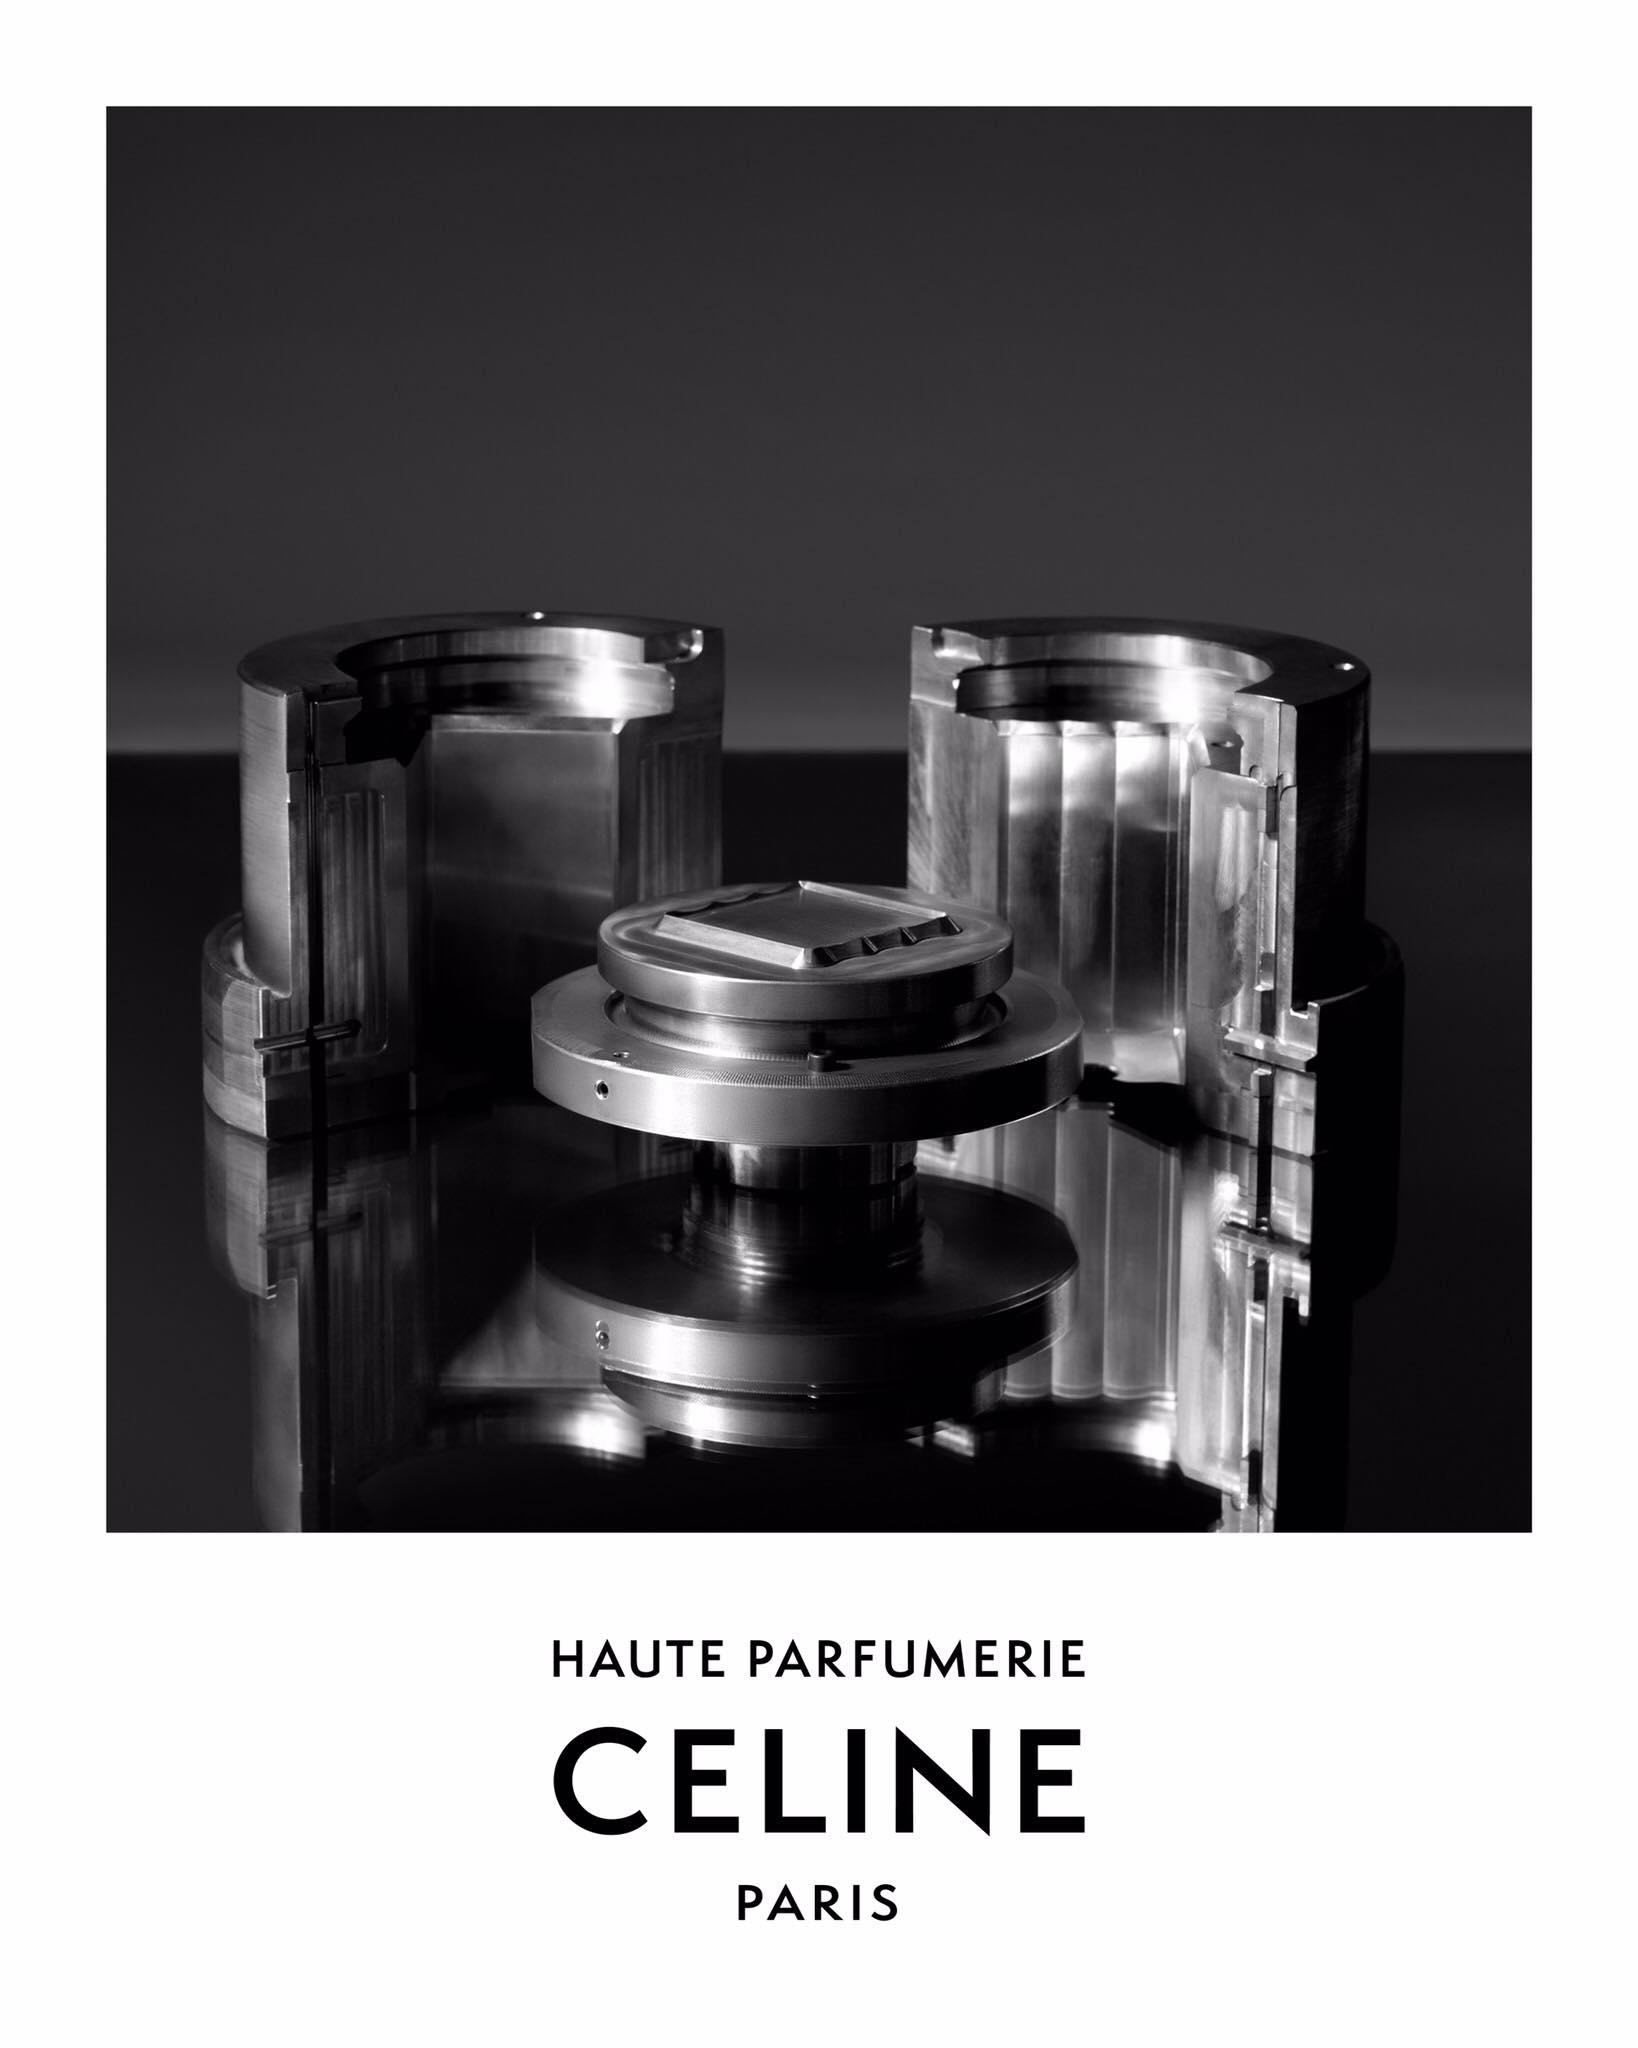 Hedi Slimane Presents his Parfumerie Collection For Maison Celine.